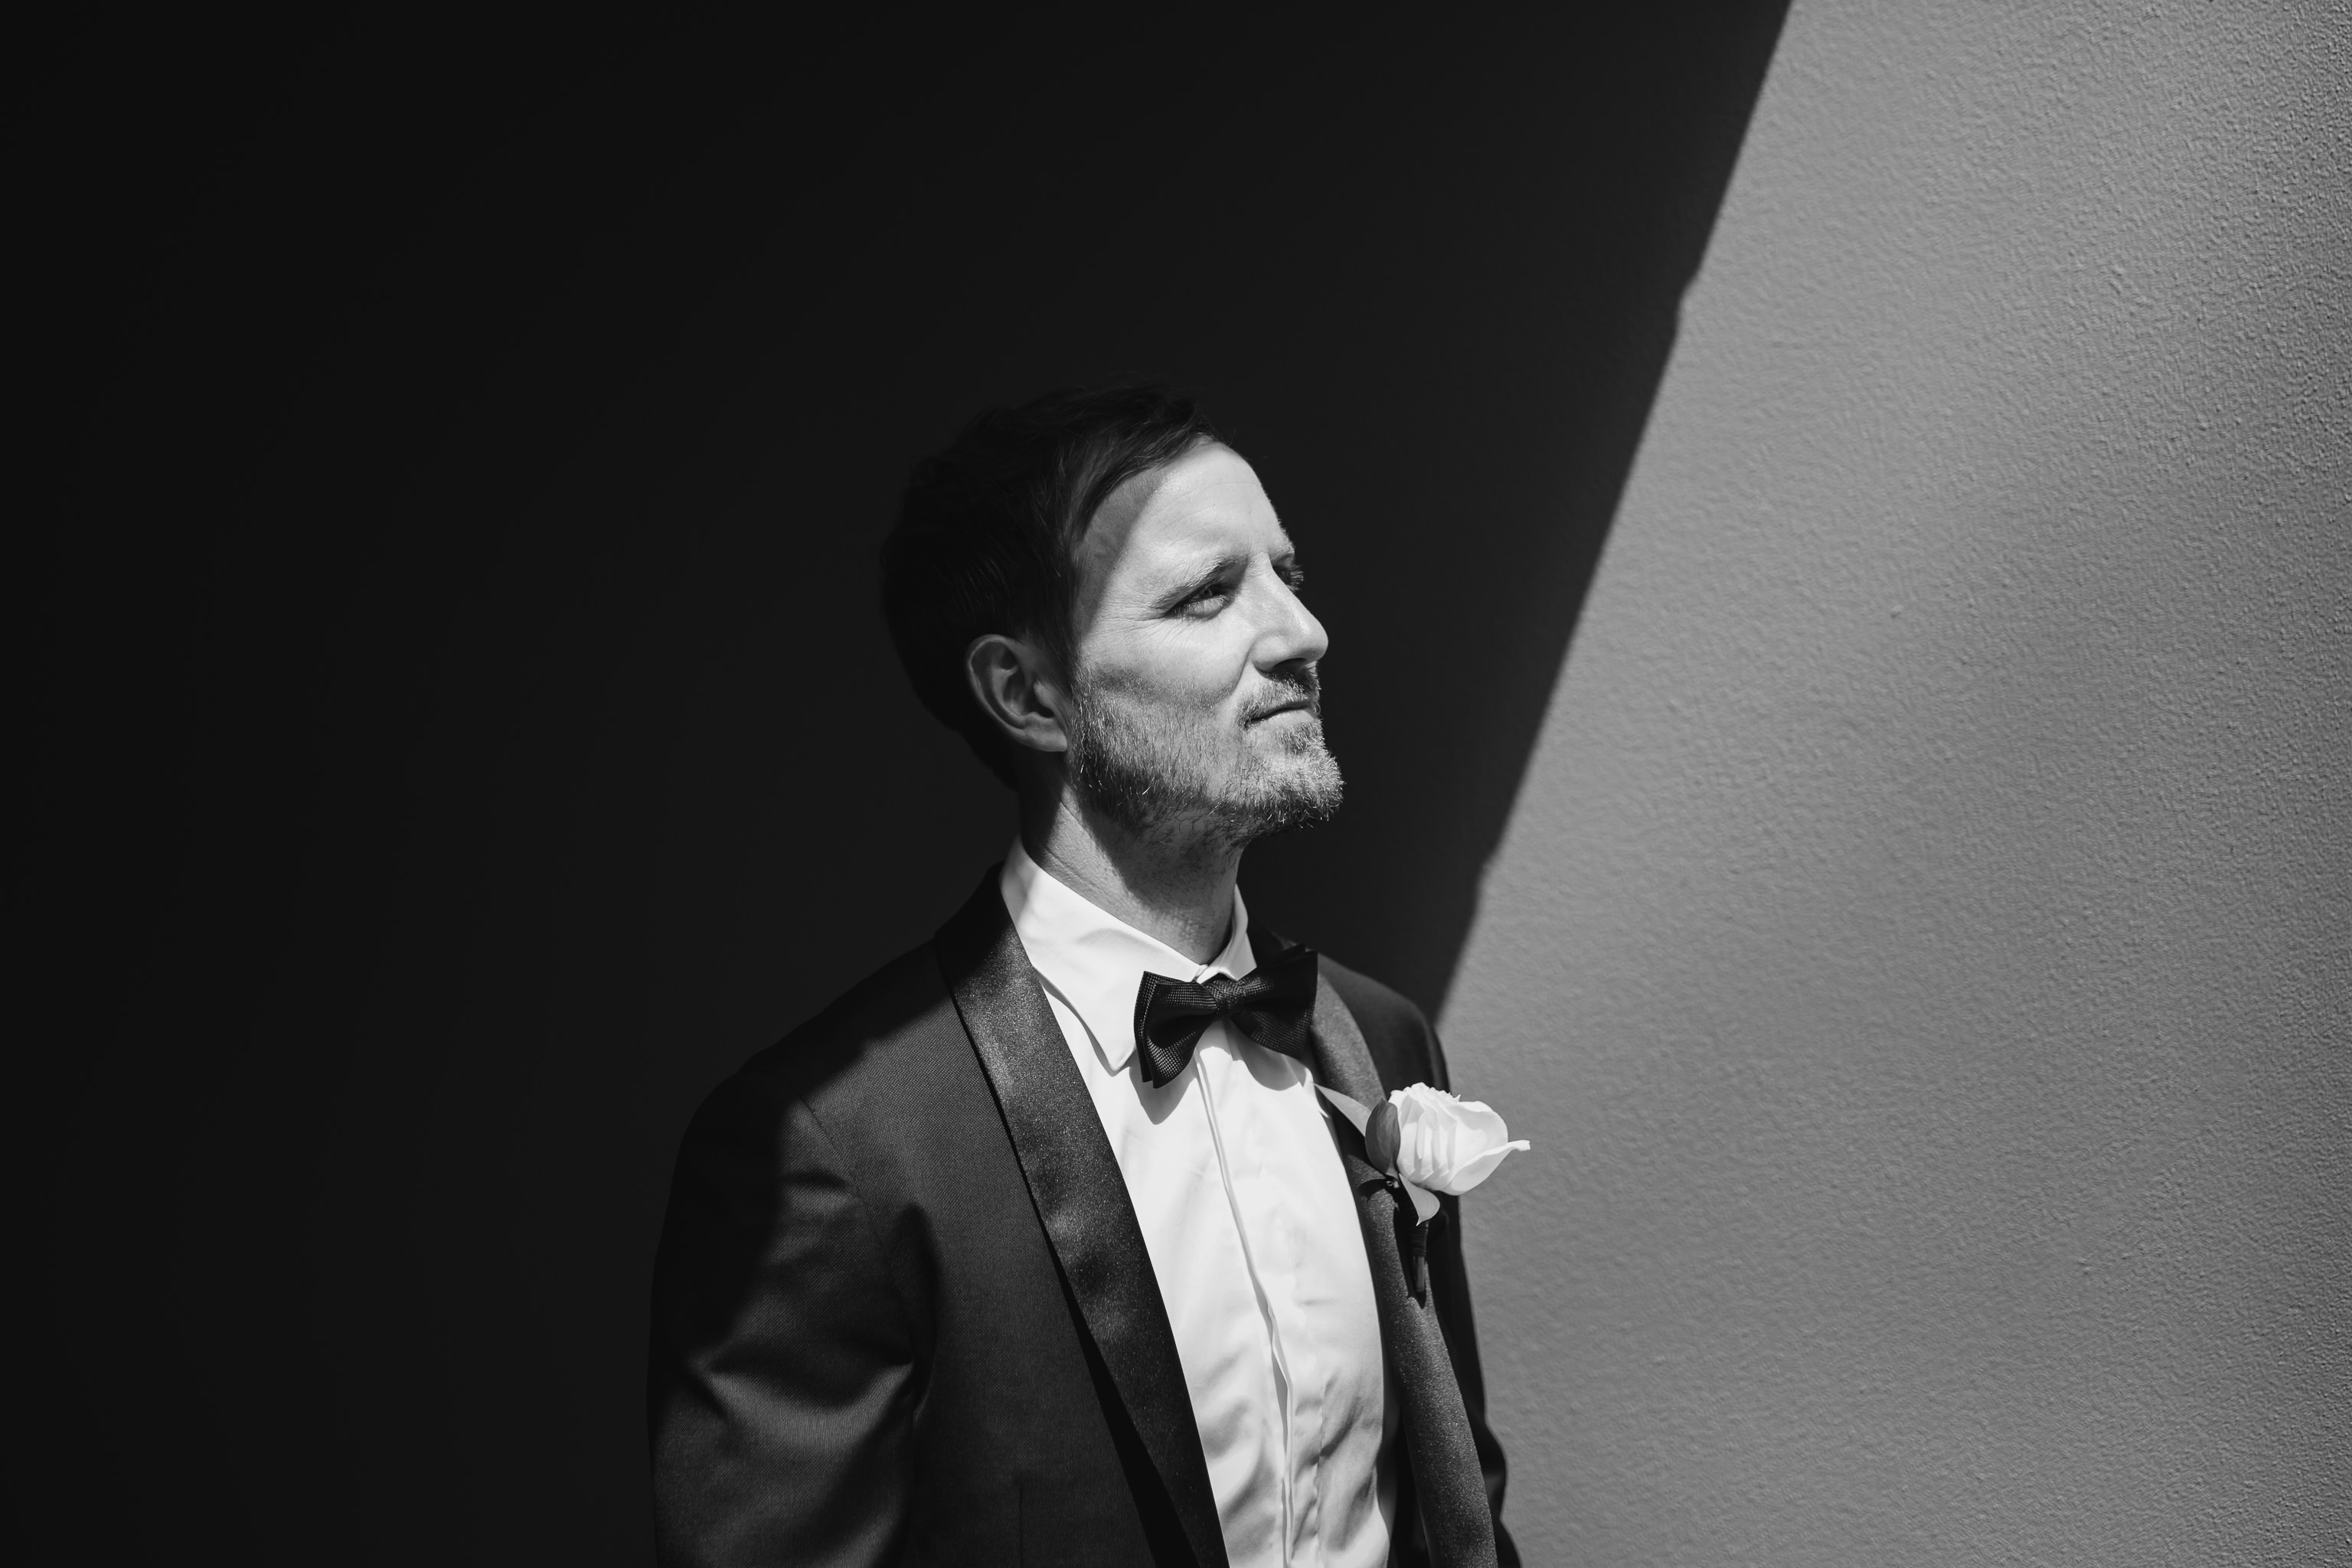 Black and white photo of groom with hard light and shadows